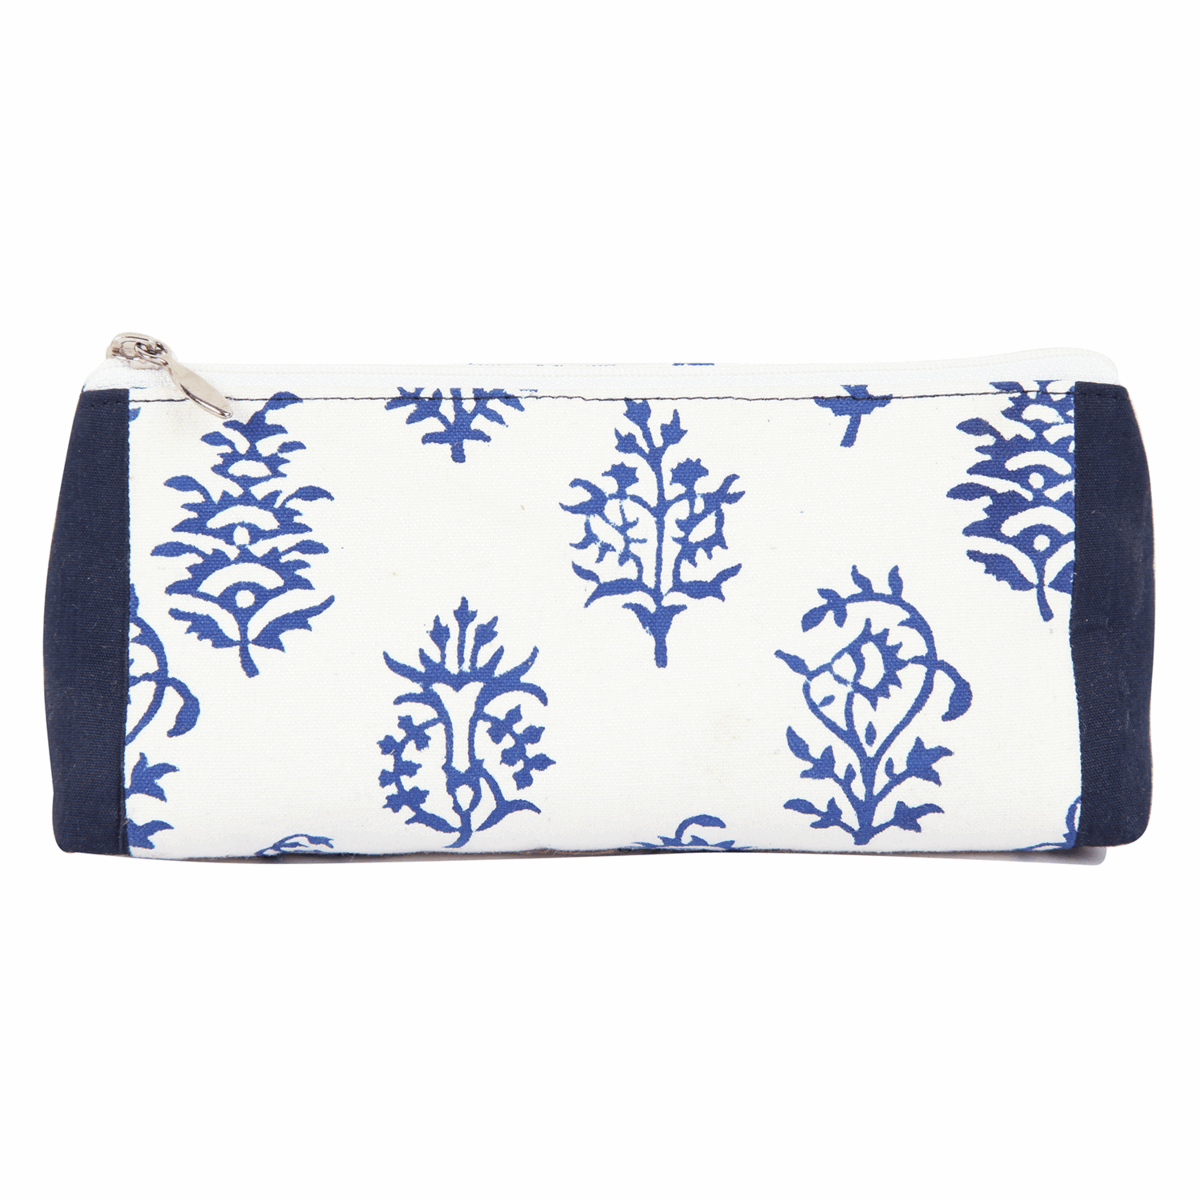 Picture of Grace: Triangular Zipped Pouch: Small 2